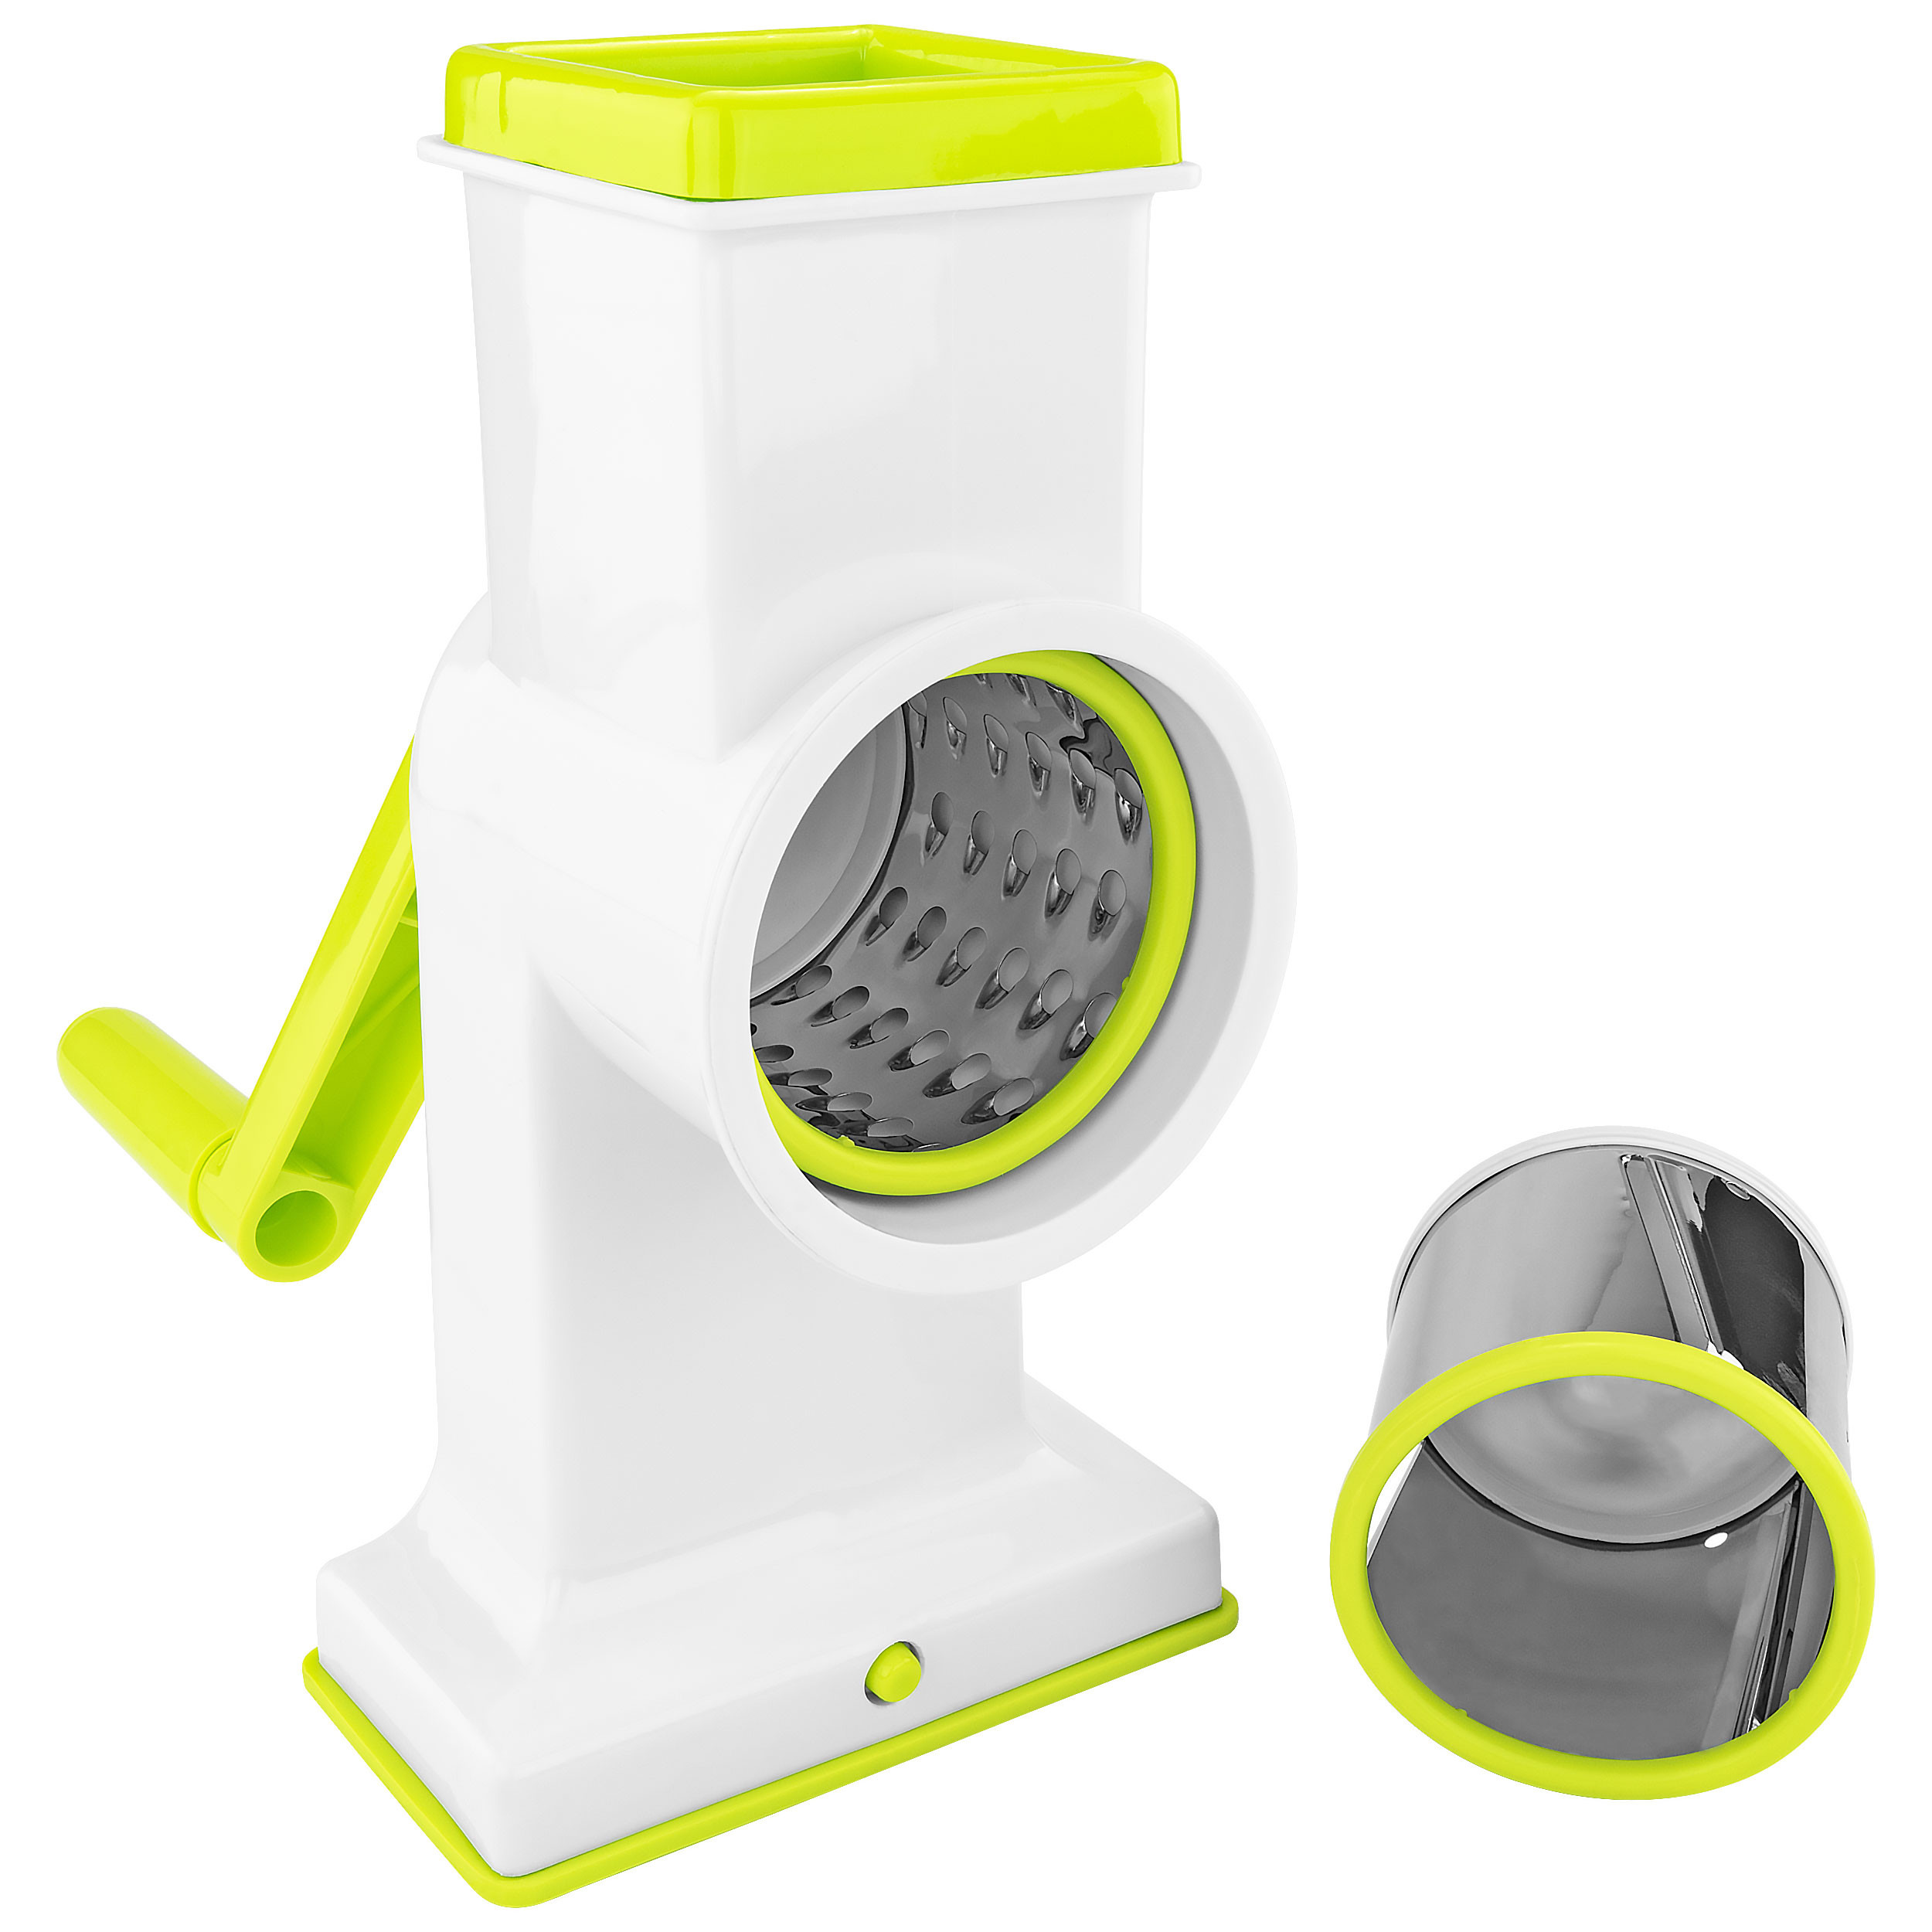 2 in 1 Deluxe Hand Crank Rotary Drum Grater Shredder Slicer Kitchen Gadget Tool for Cheese Fruits Nuts Vegetables Chocolate